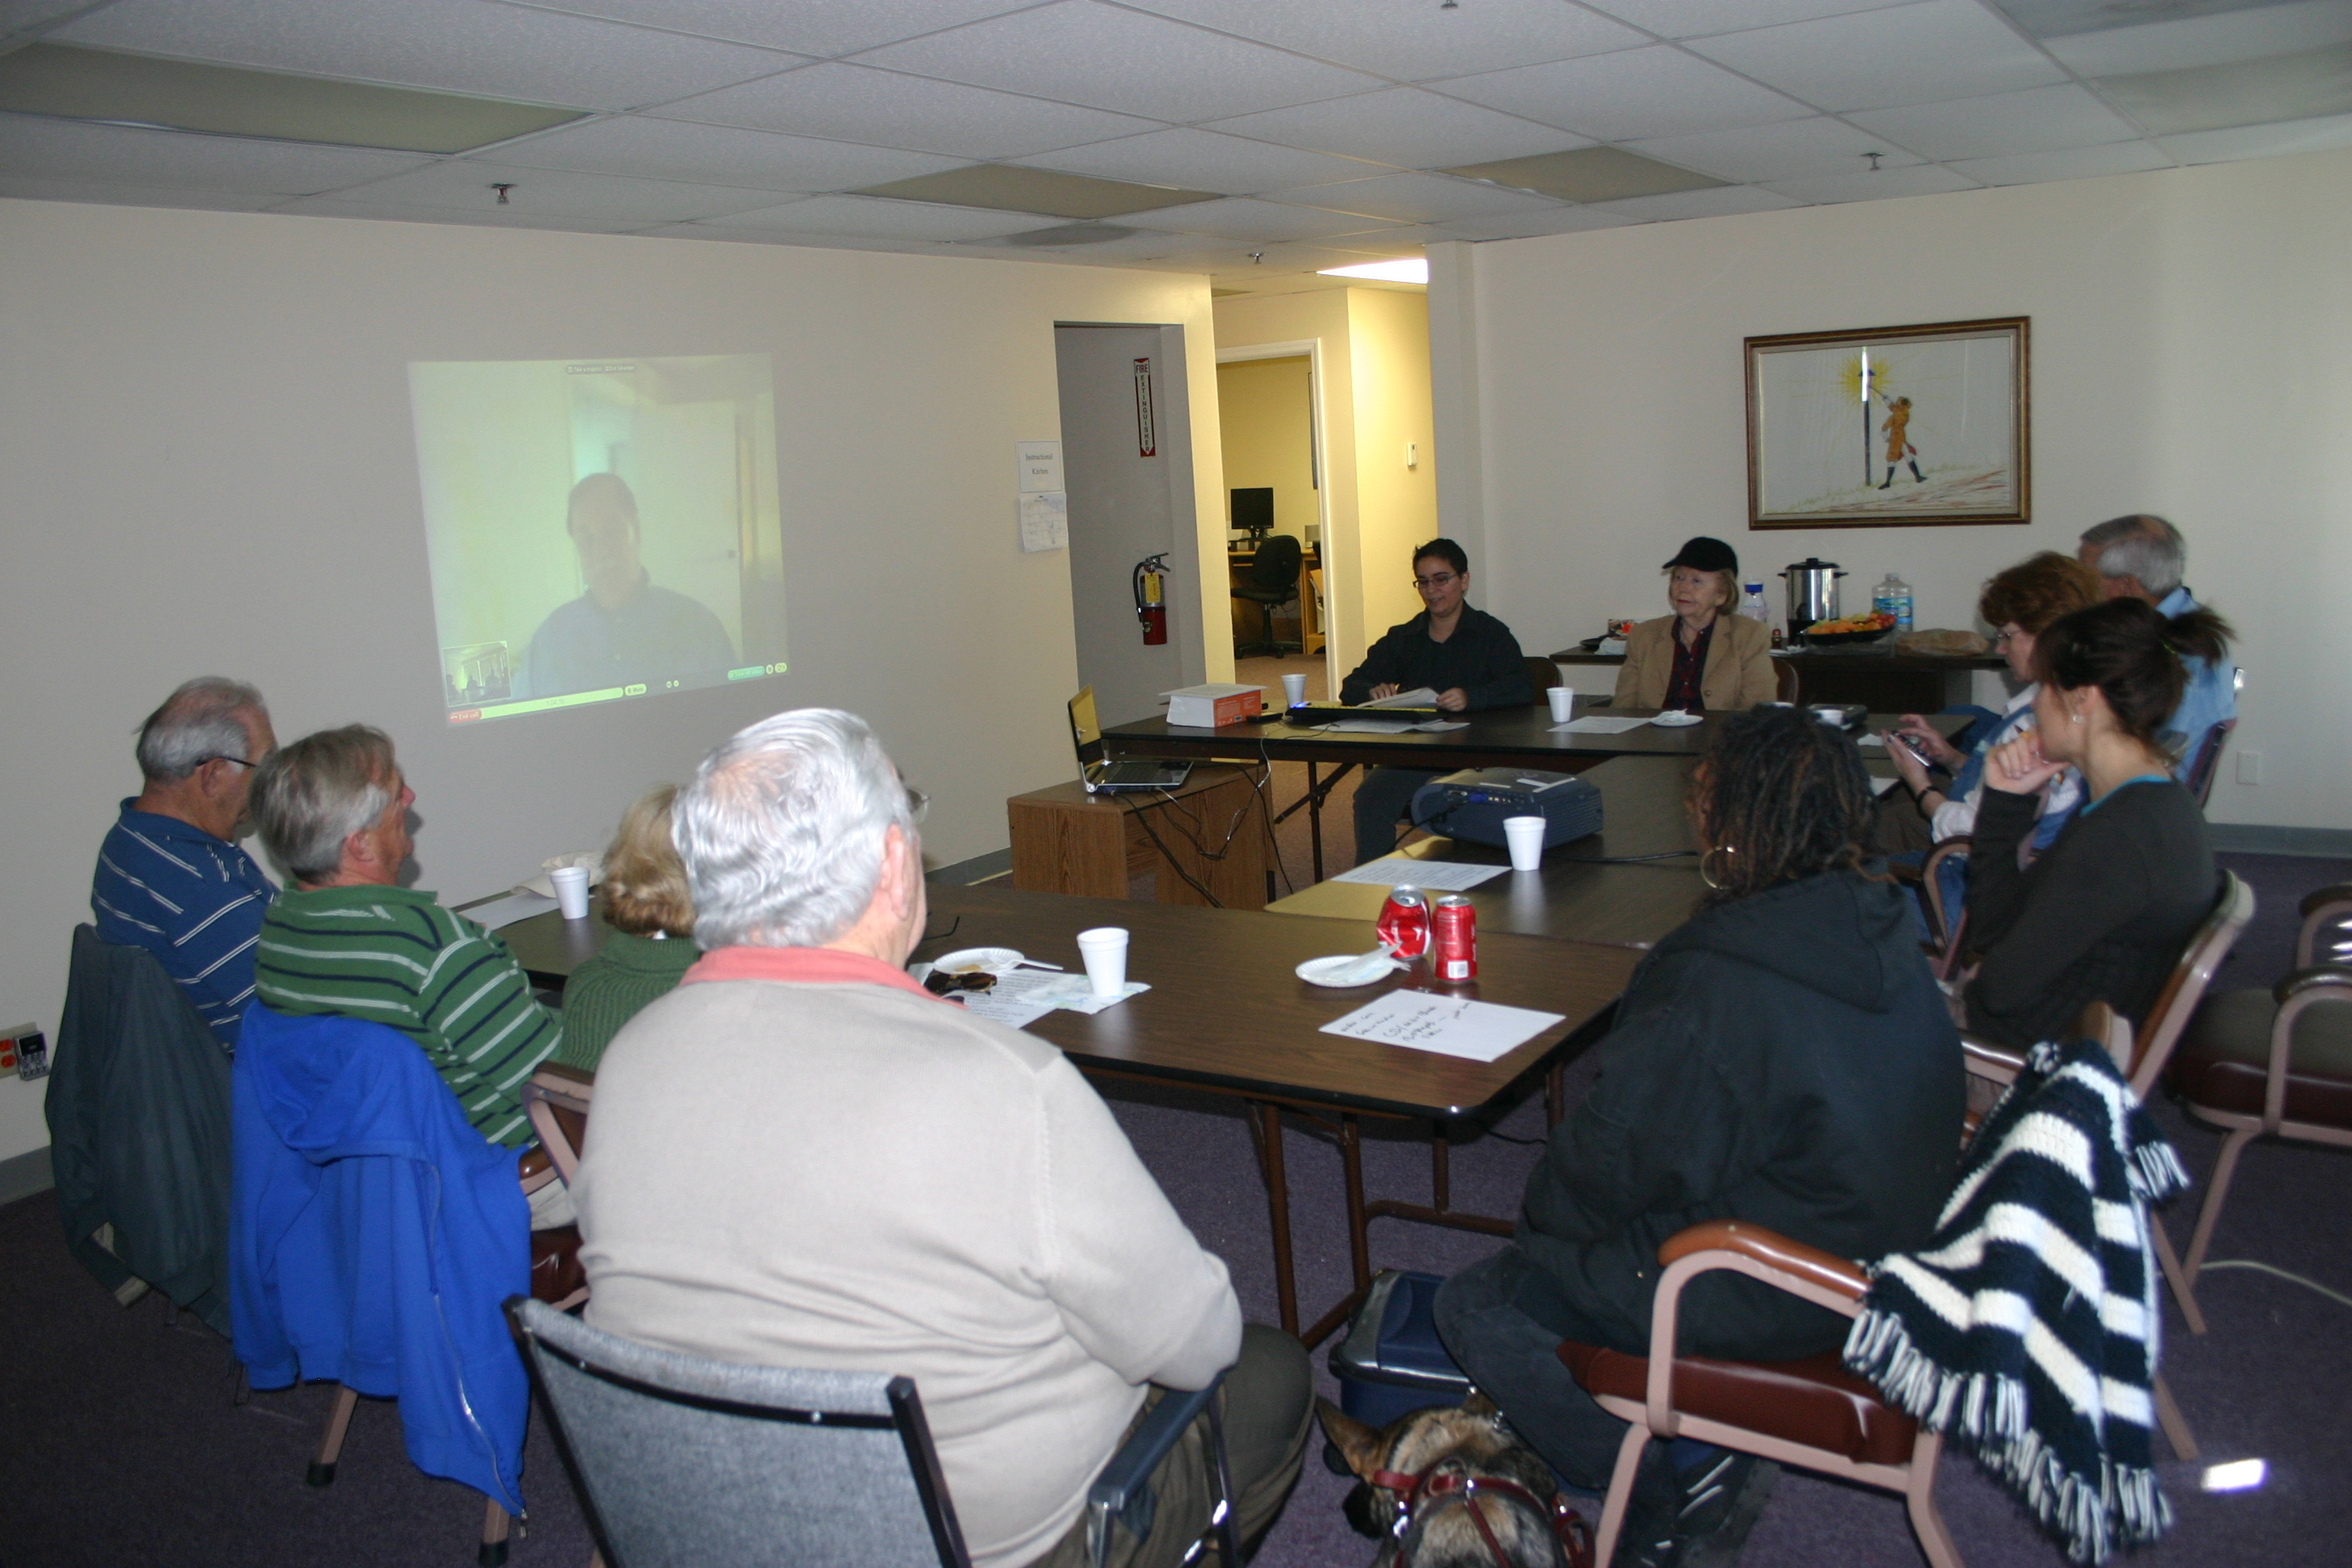 Boot Up Club members at a meeting listening to a speaker present virtually through Skype.